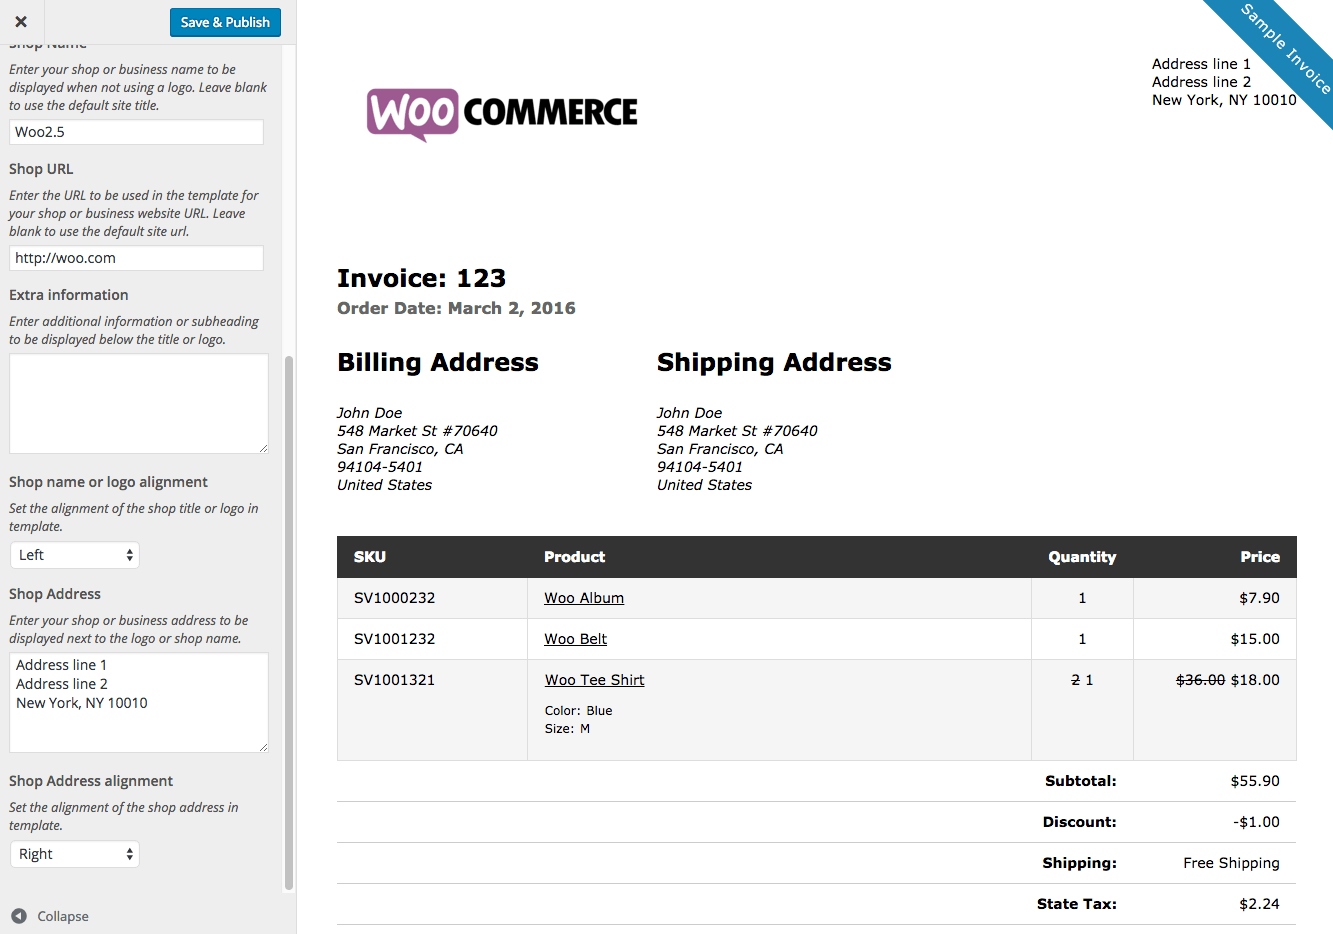 Opposenewapstandardsus  Surprising Print Invoices Amp Packing Lists  Woocommerce With Likable Woocommerce Print Invoices  Packing Lists Customizer With Nice Carpenter Invoice Template Also Fedex Blank Commercial Invoice In Addition A Proforma Invoice And Download Express Invoice As Well As Sole Trader Invoice Additionally Google Apps Invoicing From Woocommercecom With Opposenewapstandardsus  Likable Print Invoices Amp Packing Lists  Woocommerce With Nice Woocommerce Print Invoices  Packing Lists Customizer And Surprising Carpenter Invoice Template Also Fedex Blank Commercial Invoice In Addition A Proforma Invoice From Woocommercecom